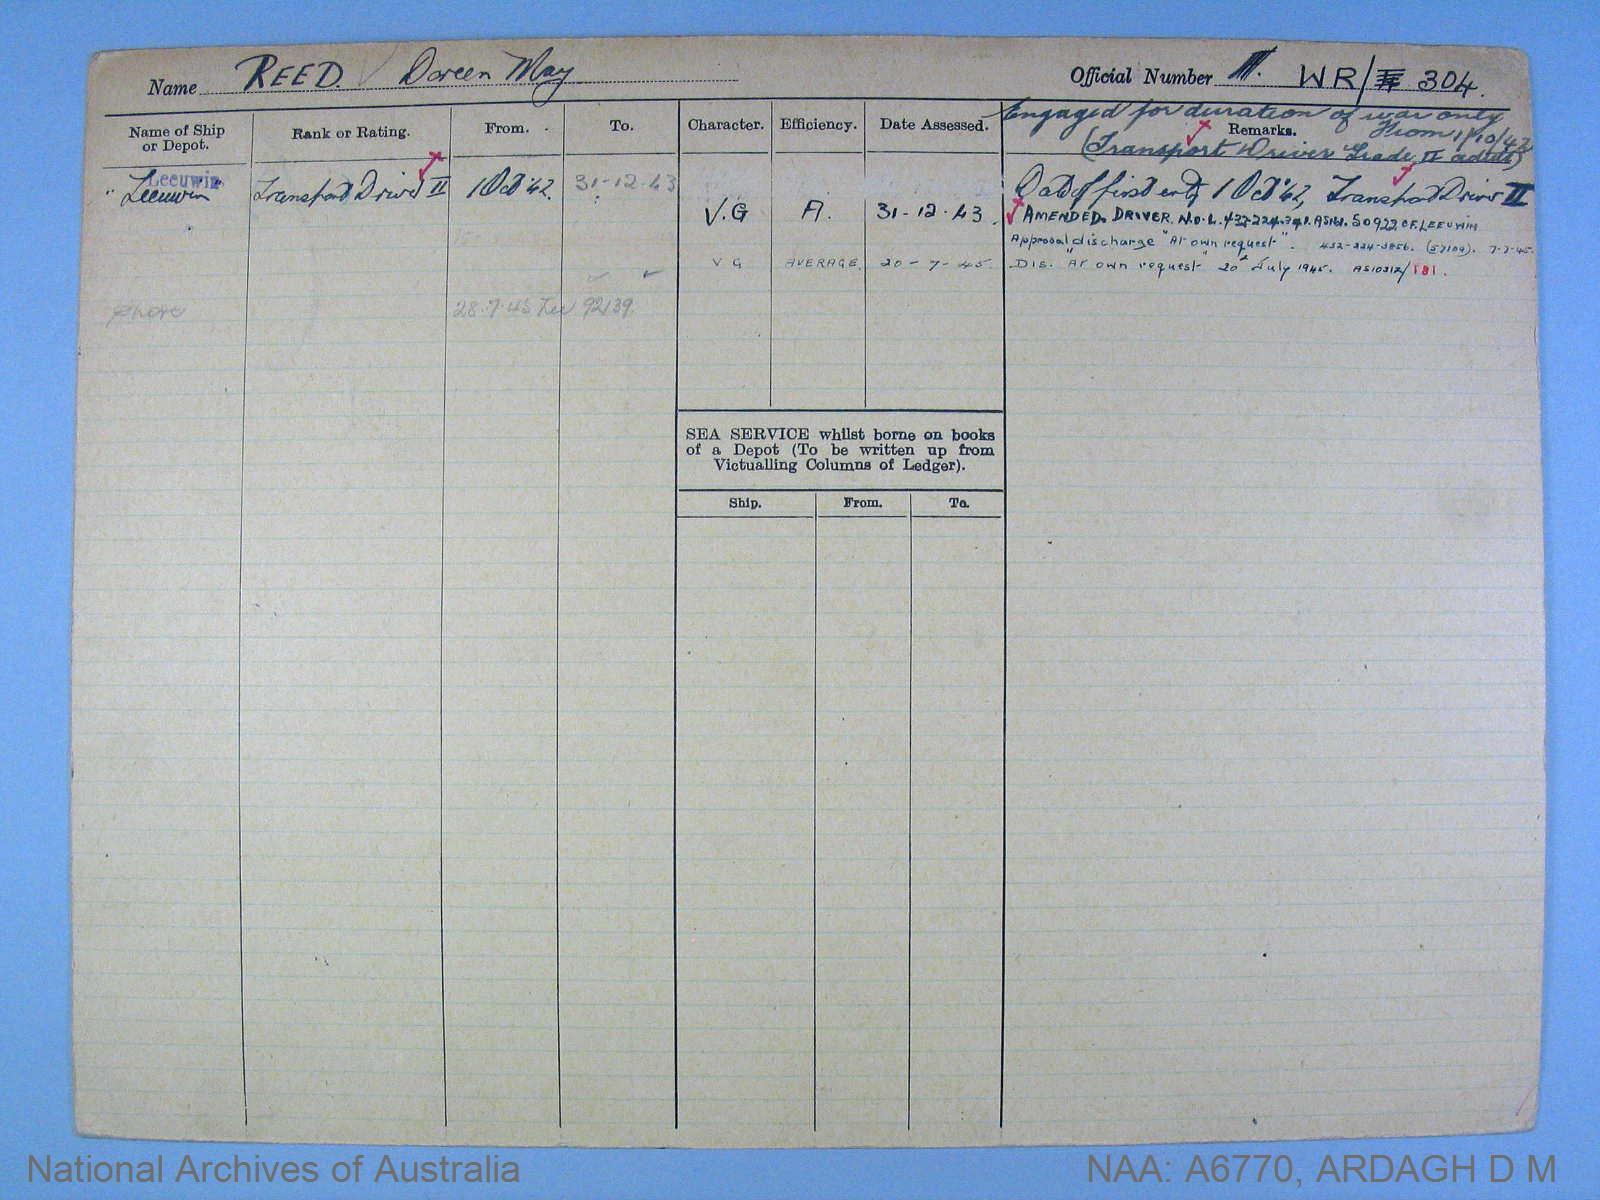 ARDAGH DOREEN MAY : Service Number - WR/304 : Date of birth - 04 Apr 1904 : Place of birth - PERTH WA : Place of enlistment - FREMANTLE : Next of Kin - REED ANNIE